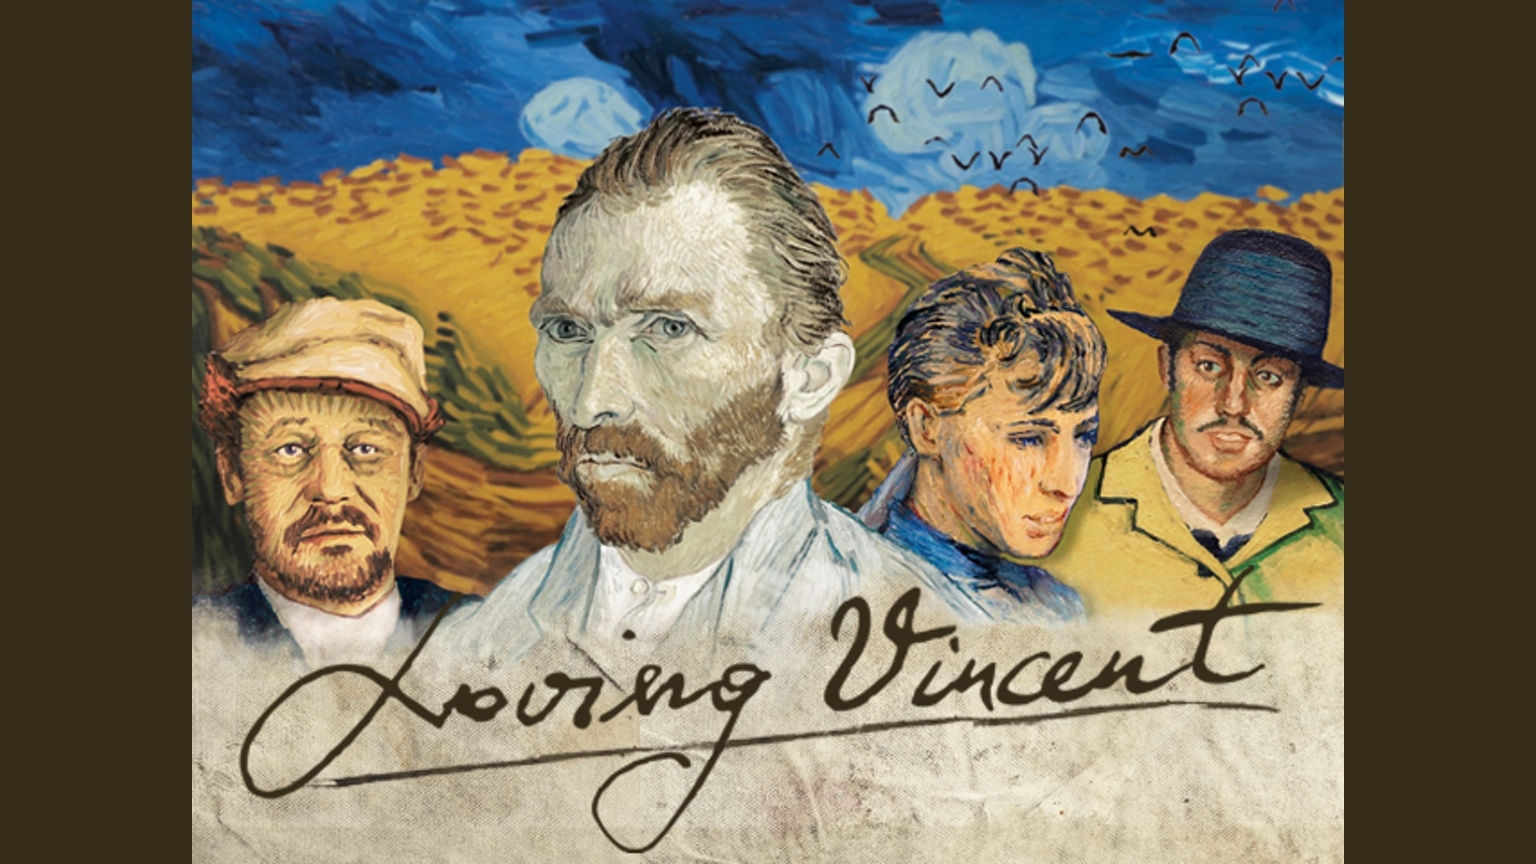 14-Animated Oil Paintings to tell the story of Loving Vincent Van Gogh